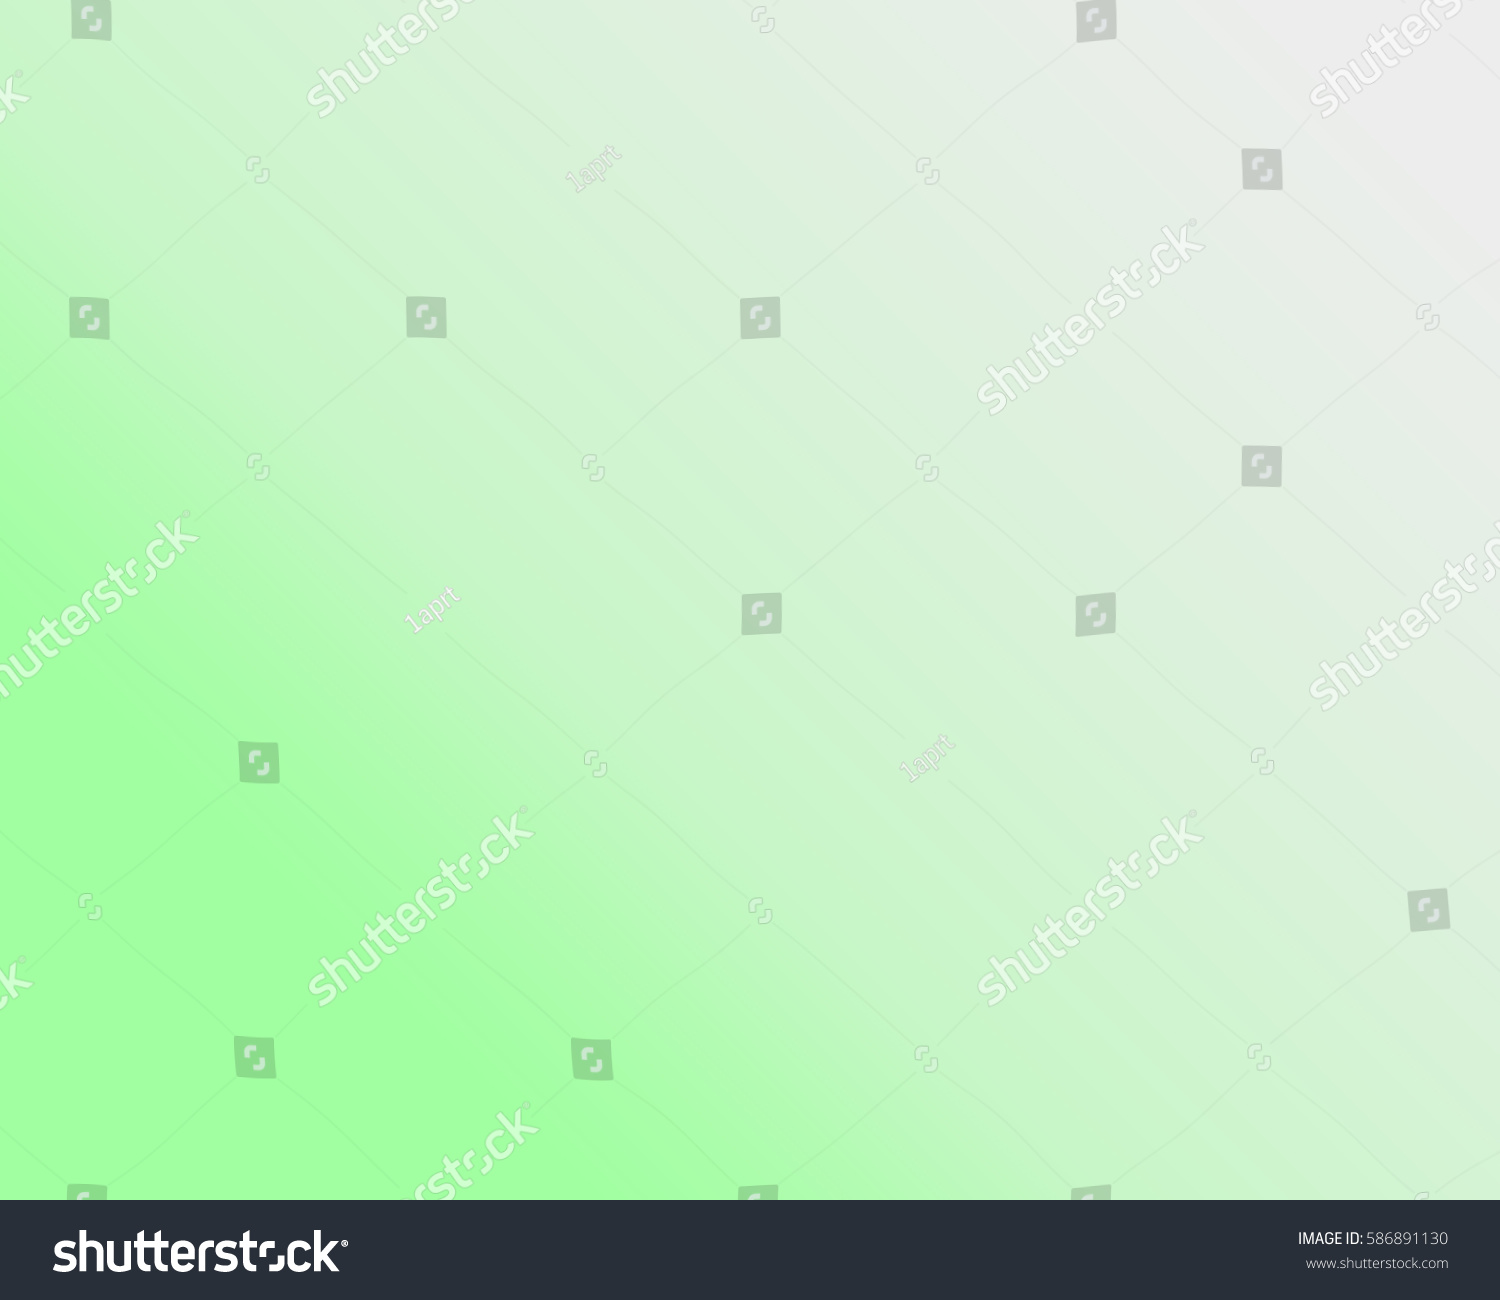 Abstract Blur Light Gradient Green Gray 586891130